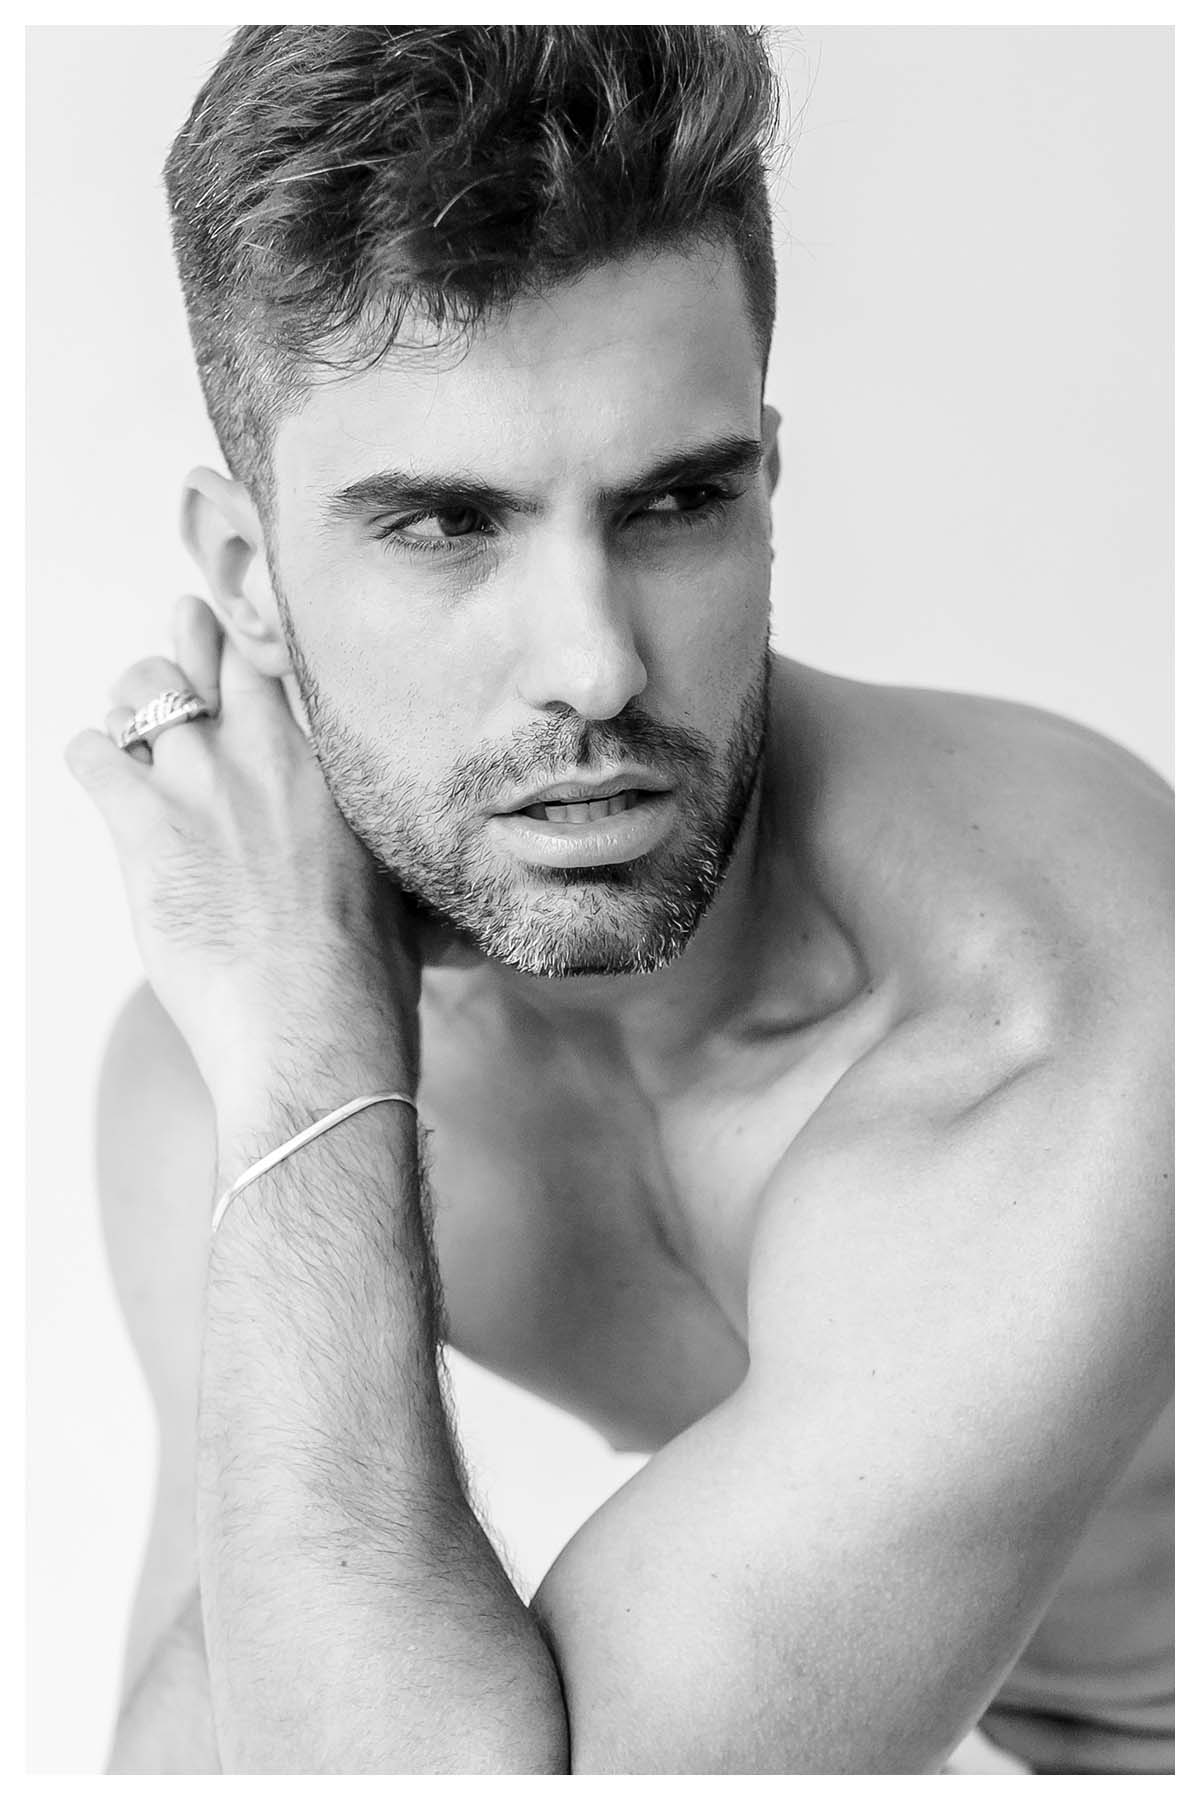 Eduardo Salles by Thiago Martini for Brazilian Male Model